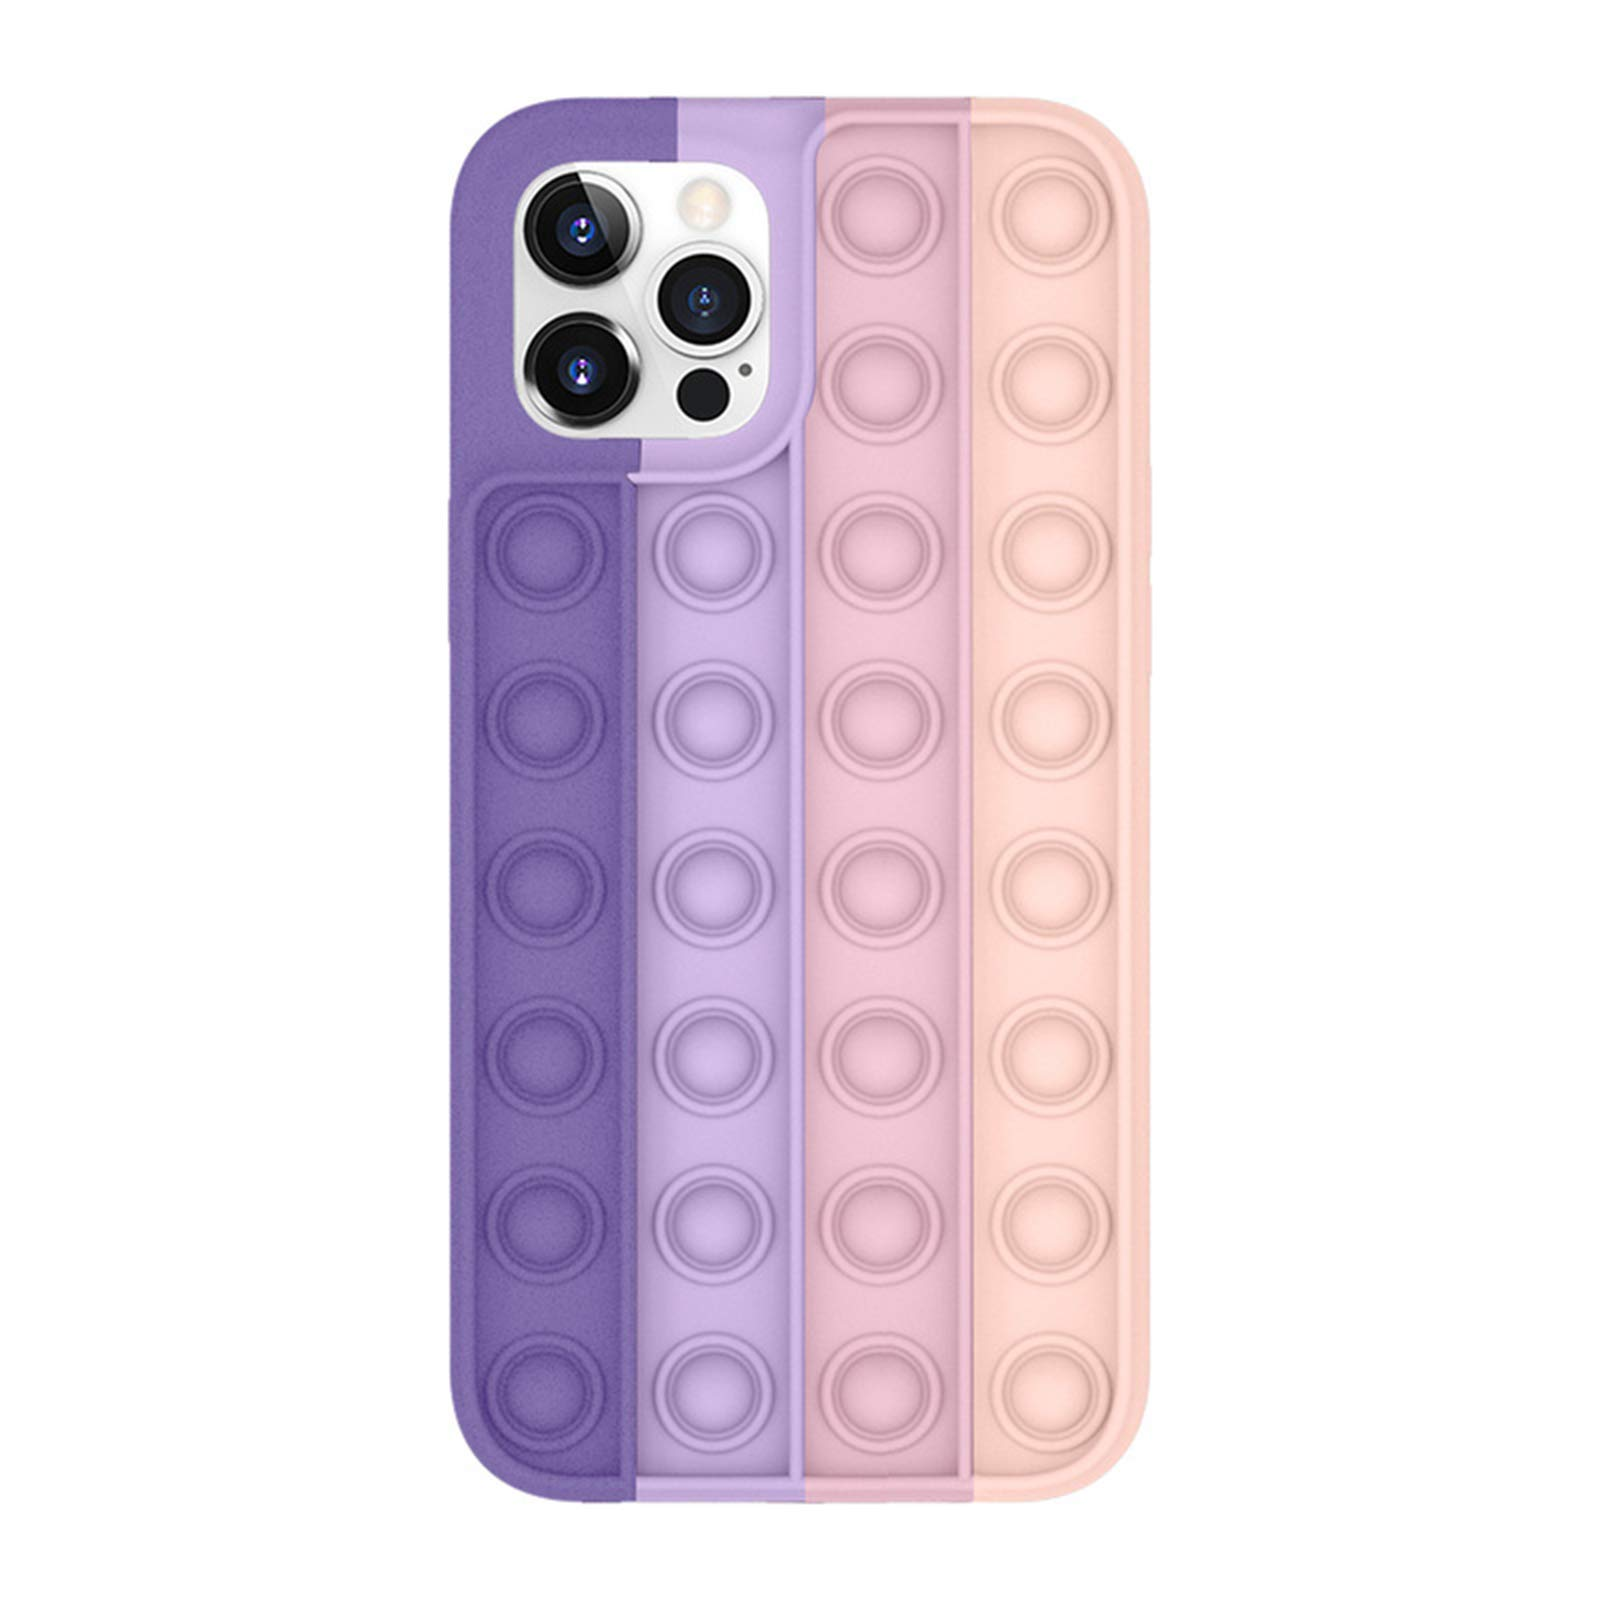 JBEELATE 2 in 1 Fidget Toy Silicone iPhone Case Cell Phone Basic Cases Push Pop Bubble Fidget Toys Designed for iPhone 11/12/12pro/Max (C, iPhone 12)